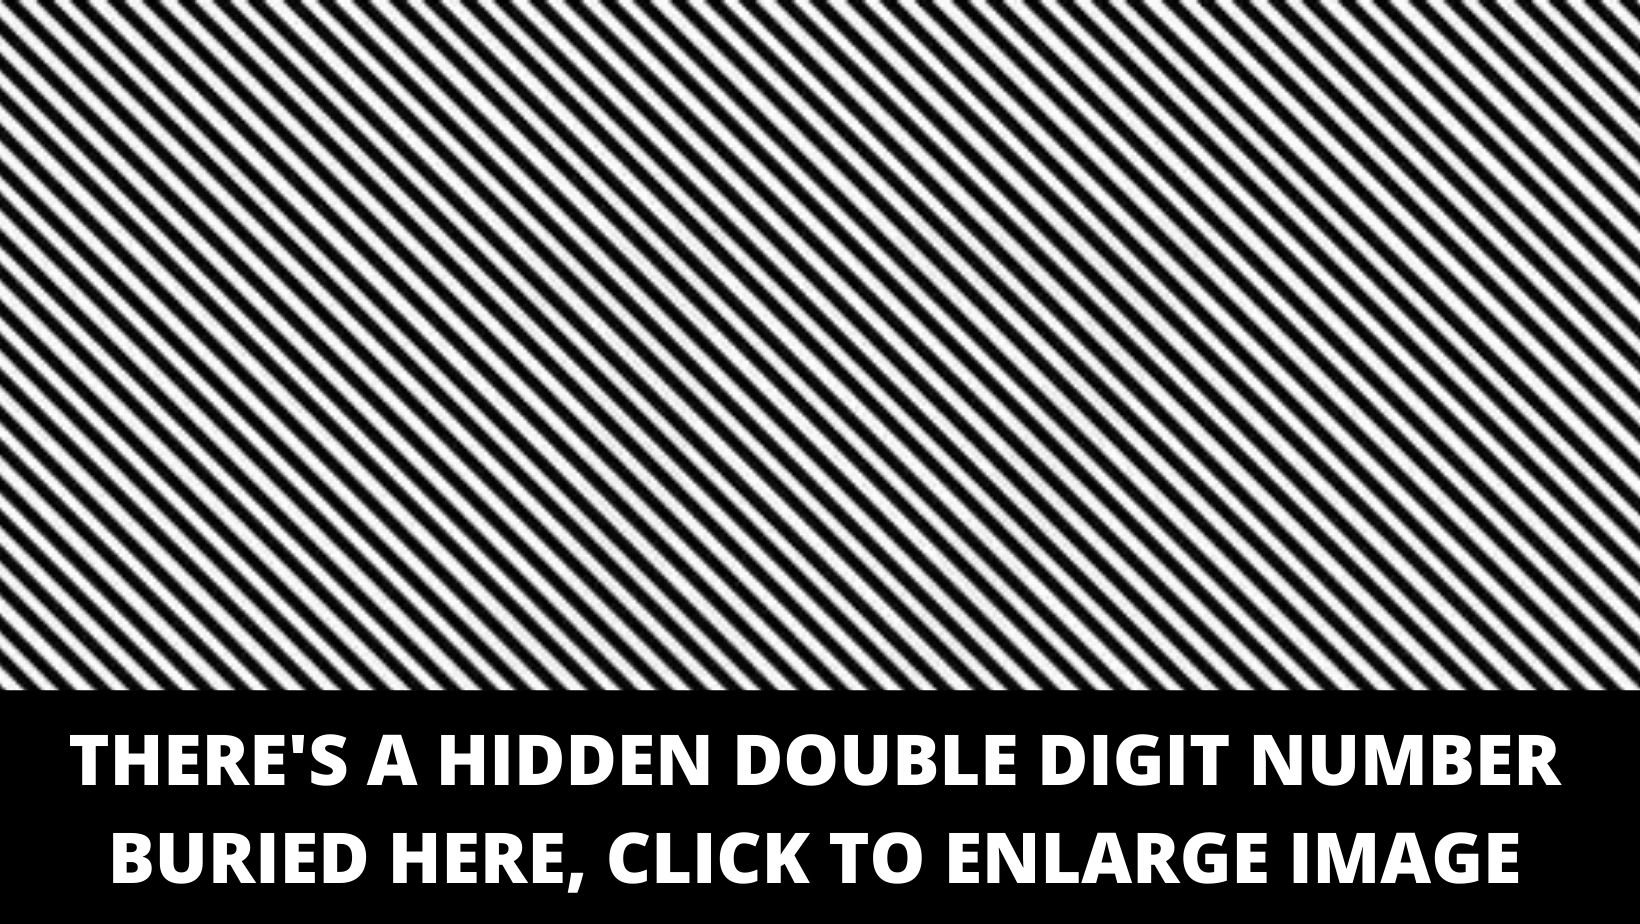 1 157.jpg?resize=412,275 - There Is A Double-Digit Number Buried In This Optical Illusion, Can You Spot It?